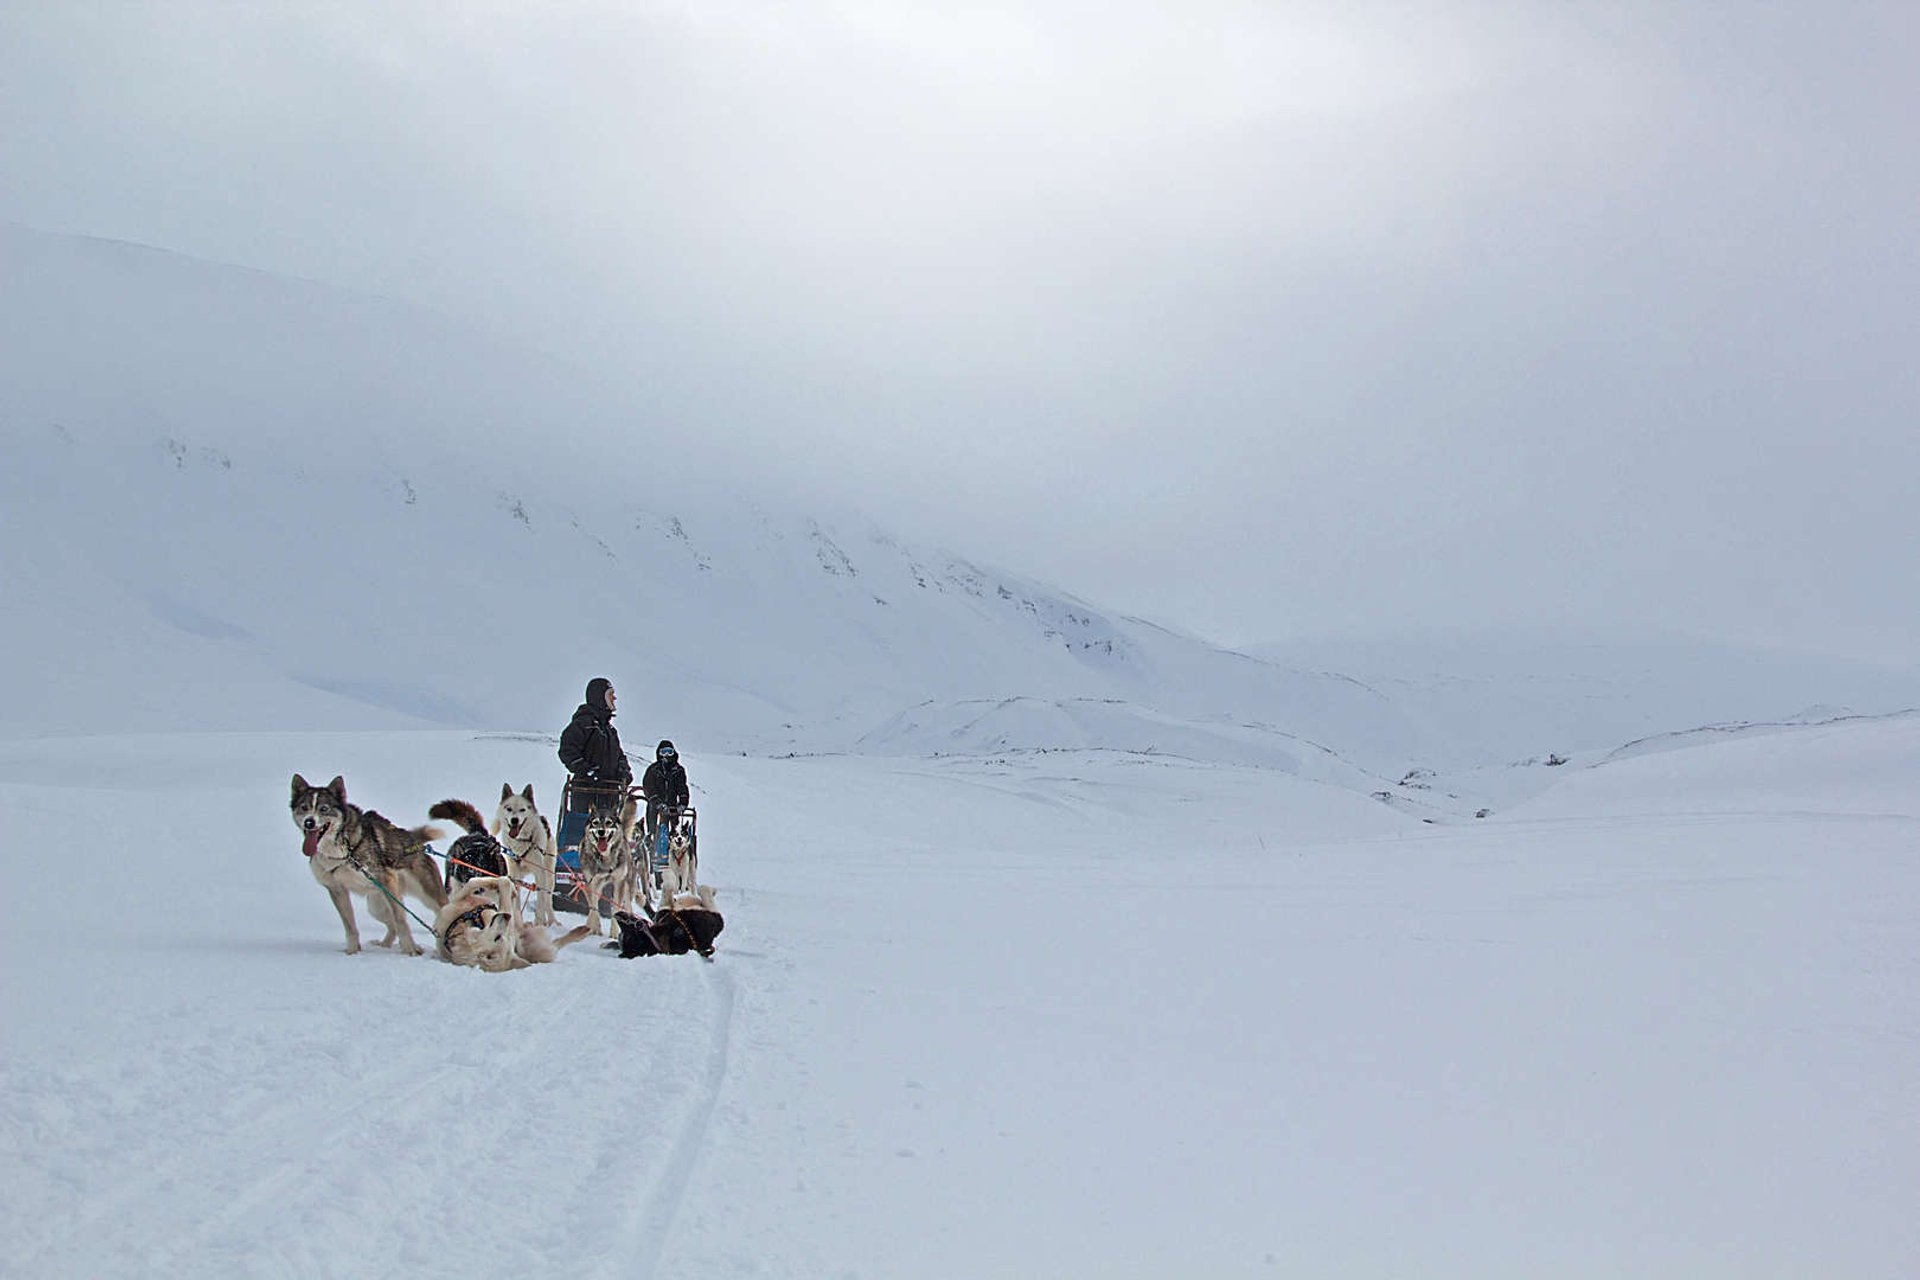 Dog Sledding in Svalbard - Best Season 2019